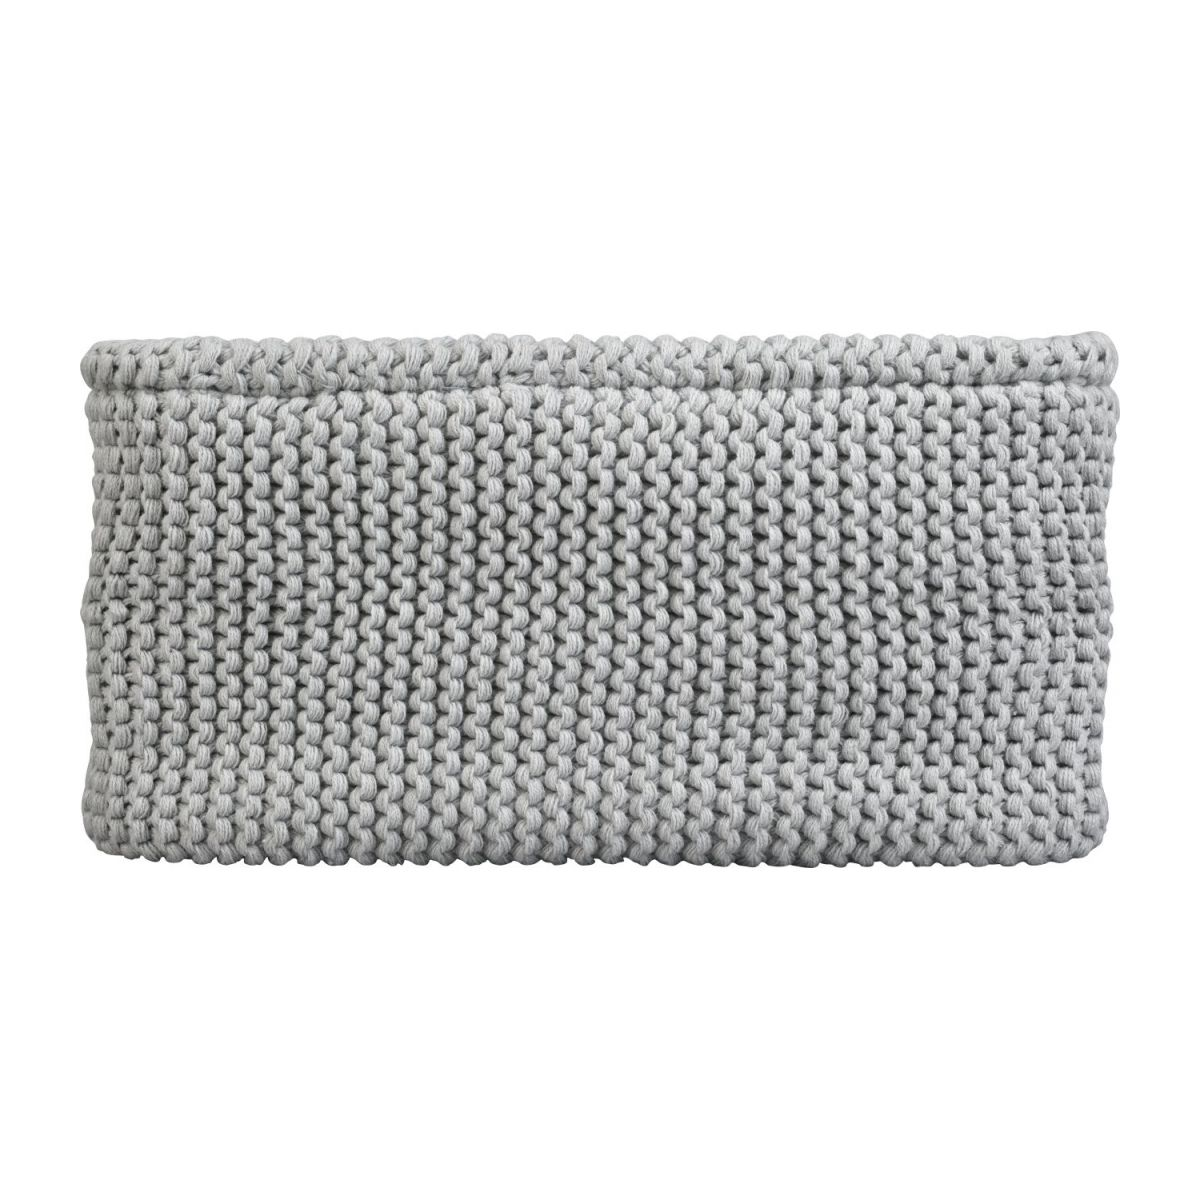 Small square basket n°3